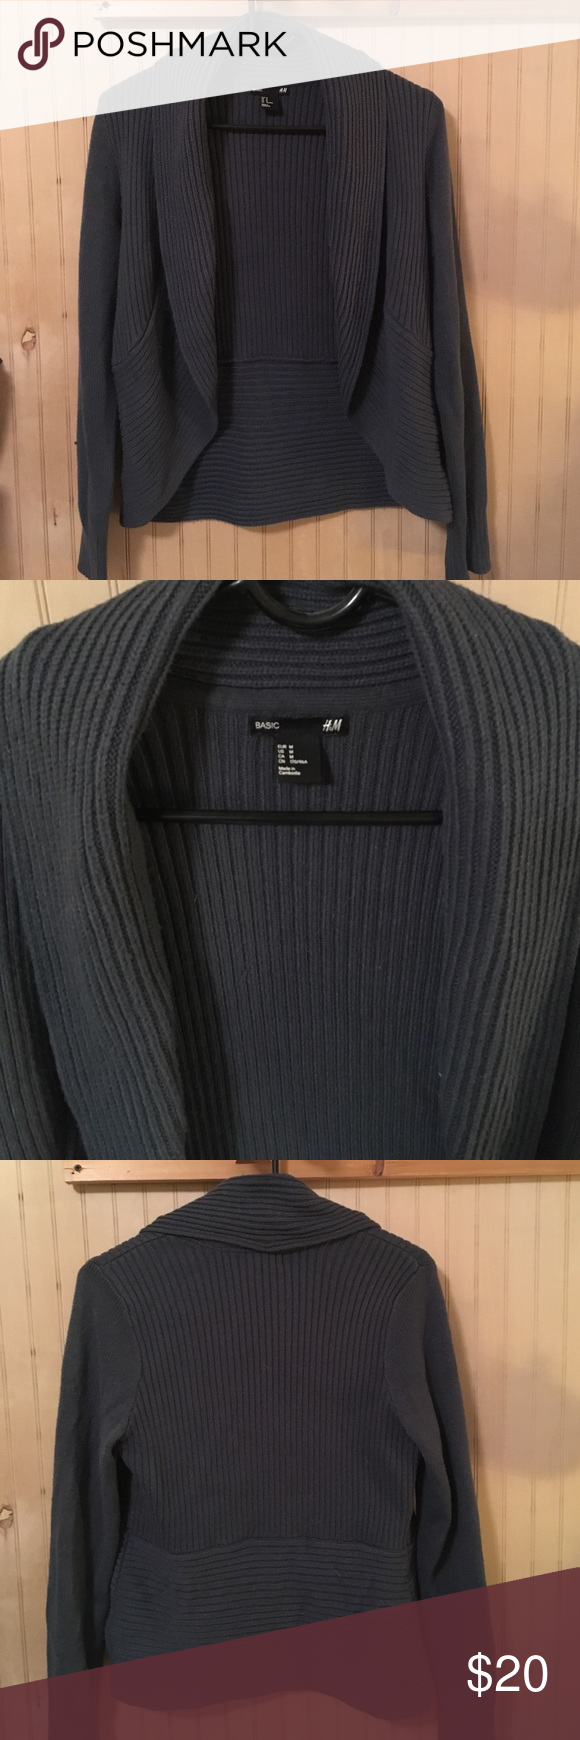 H&M Sweater Blue ribbed H&M sweater. Used but still in good shape. Really warm and soft with a flattering cut. Size M H&M Sweaters Cardigans